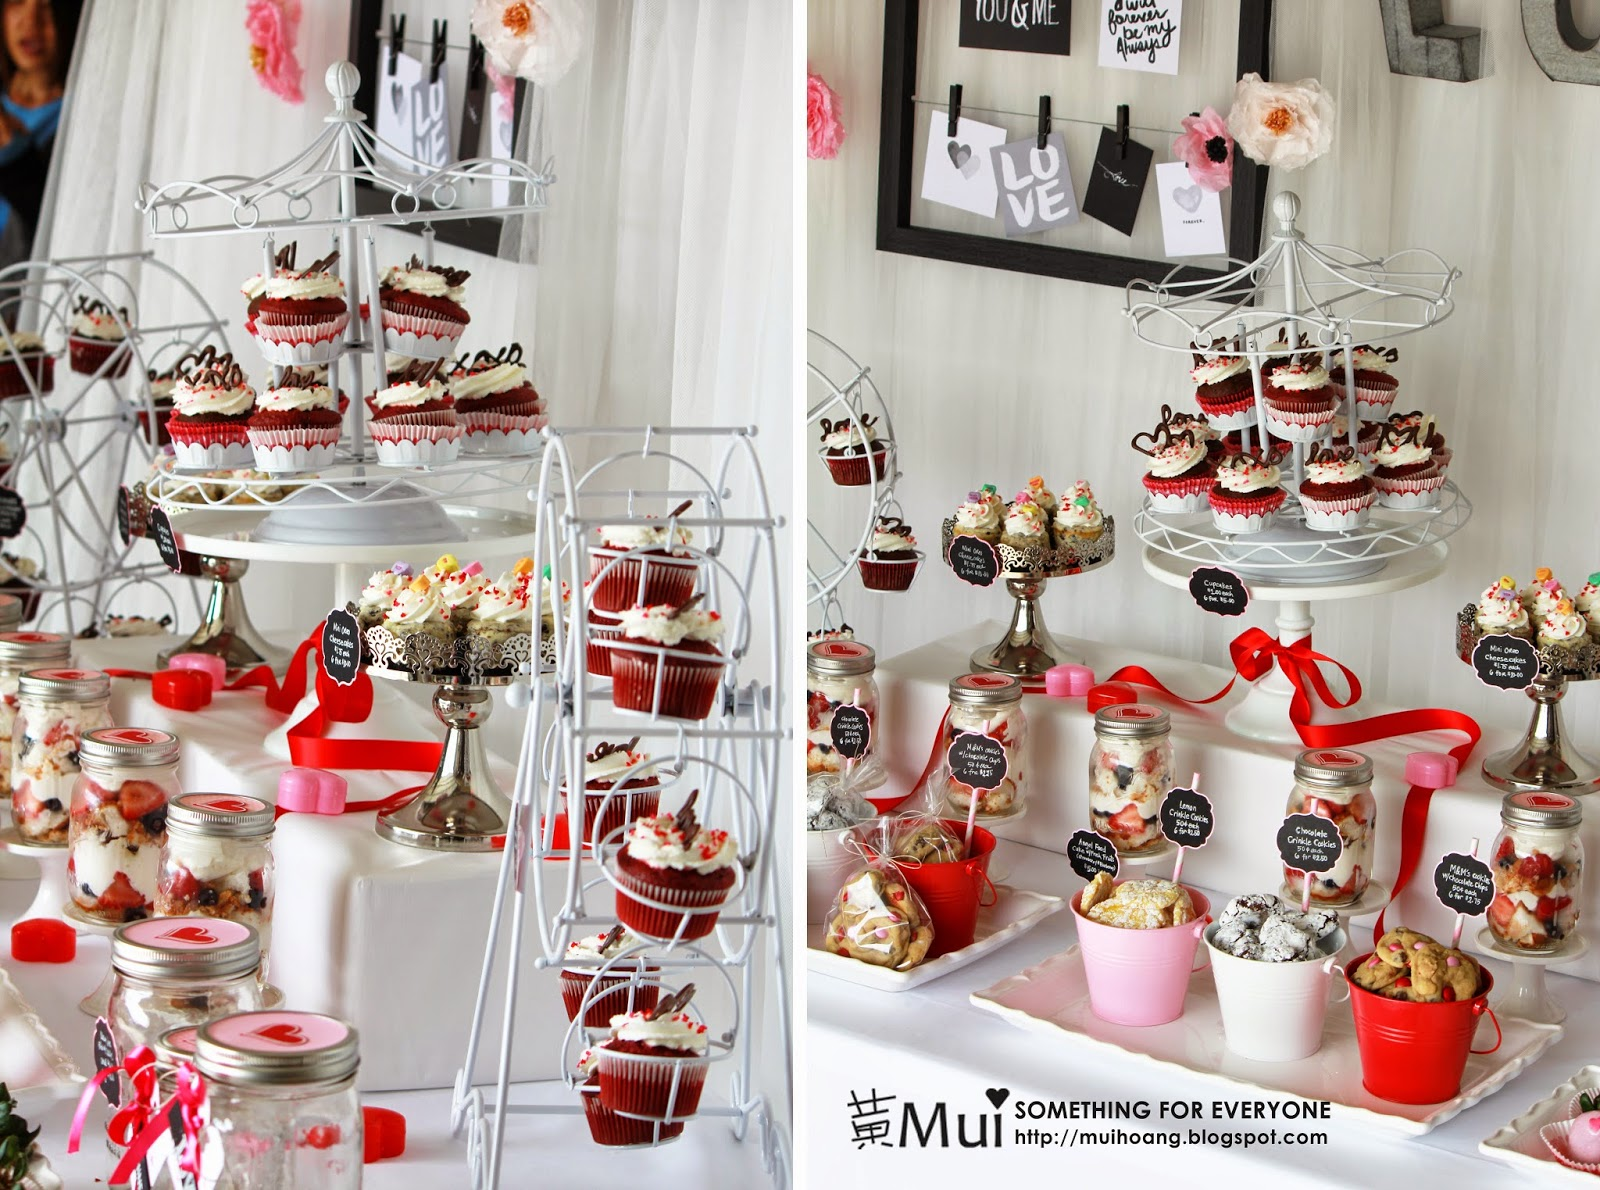 Something For Everyone Valentine Dessert Table For Bake Sale